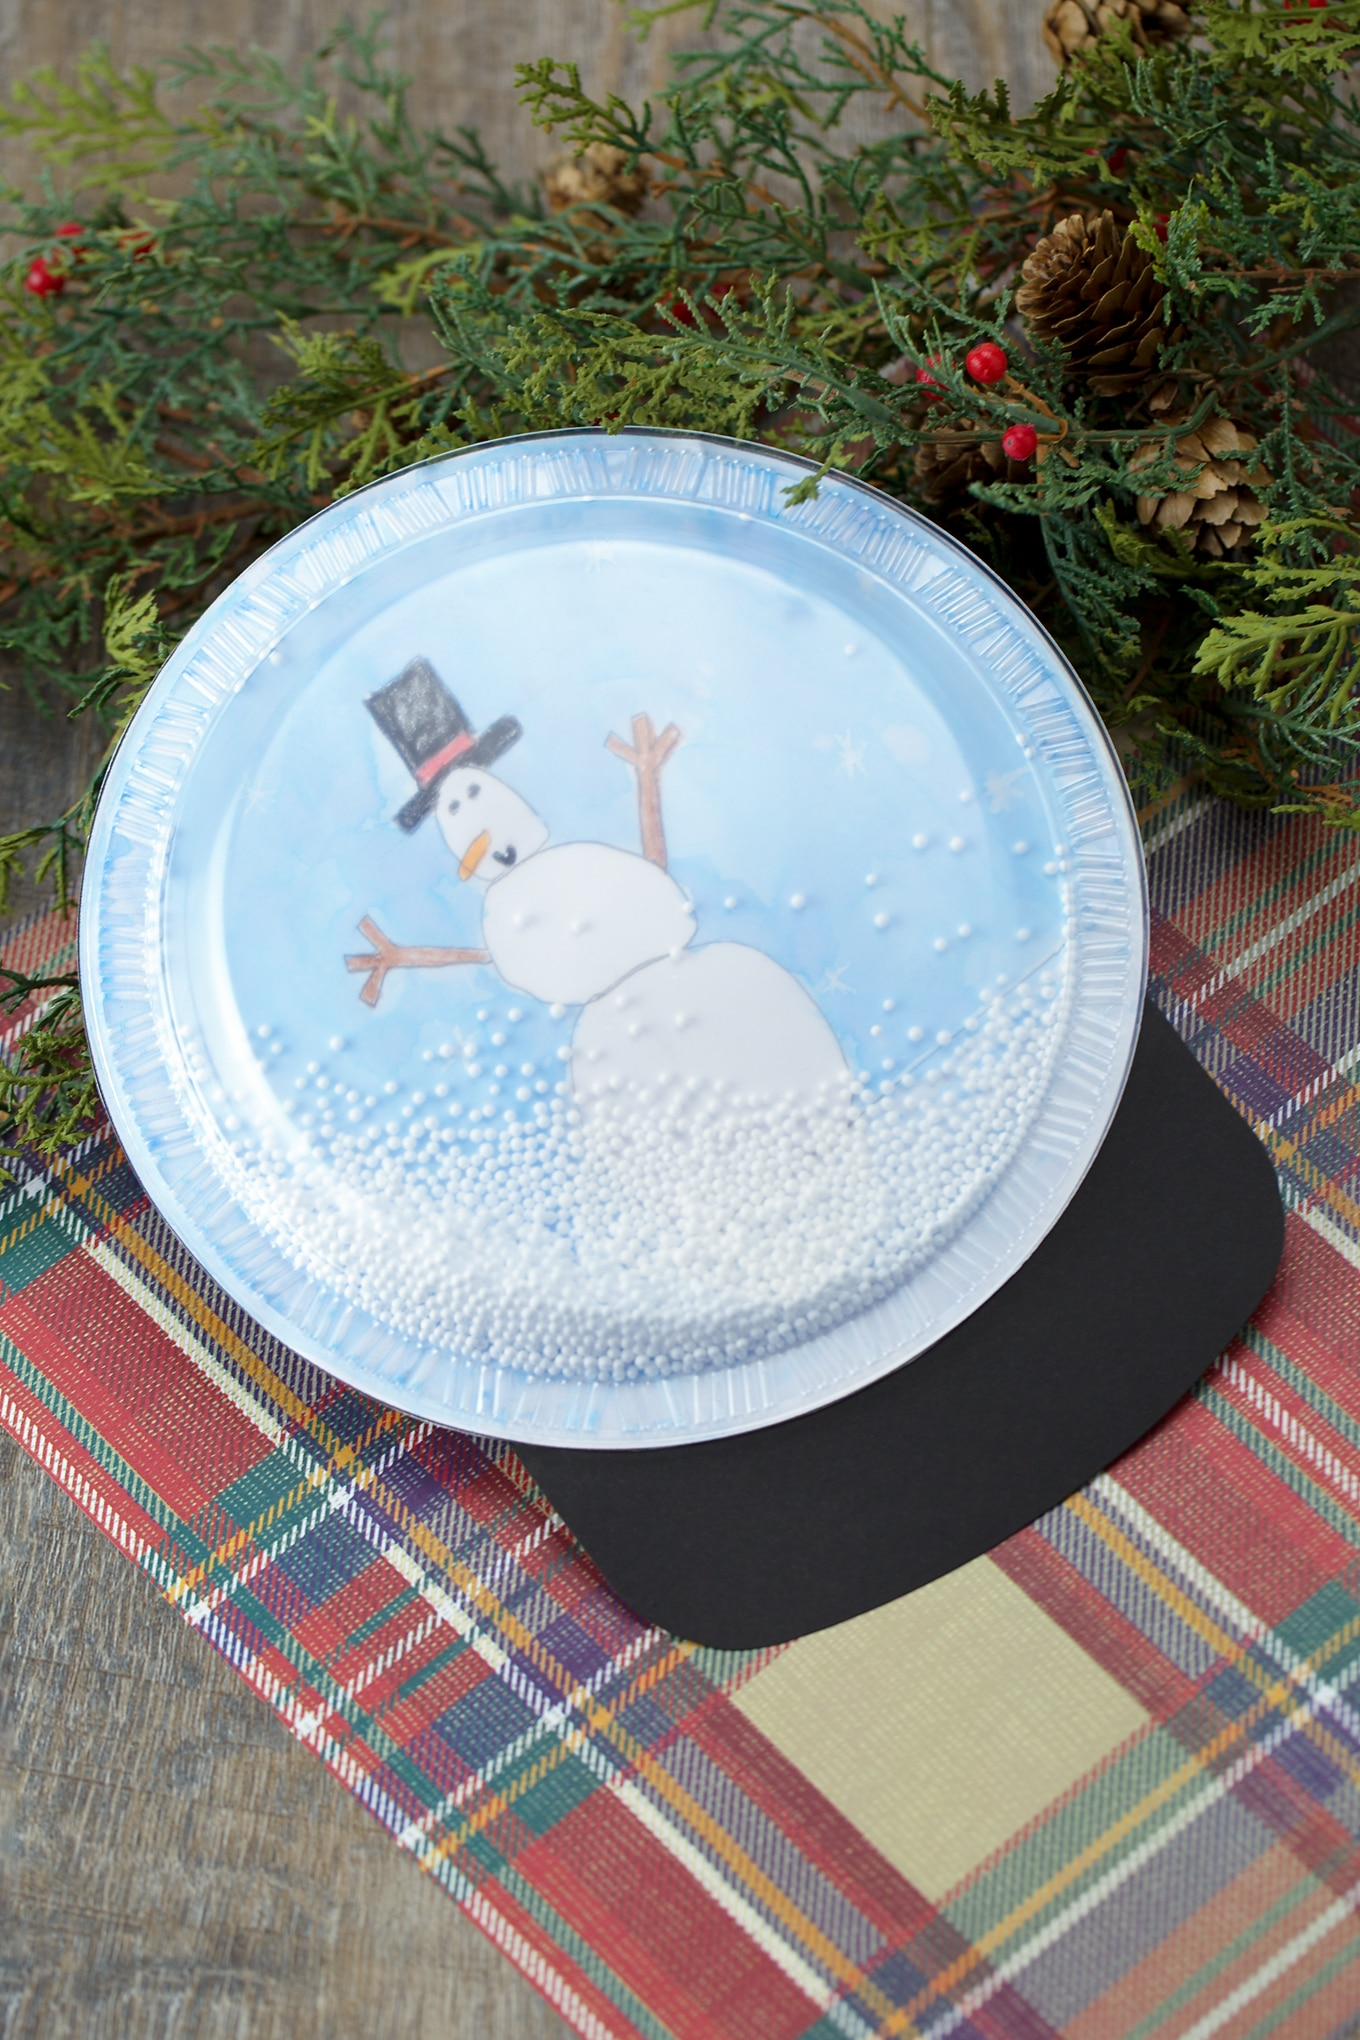 How to Make the Sweetest Plastic Plate Snow Globe Craft